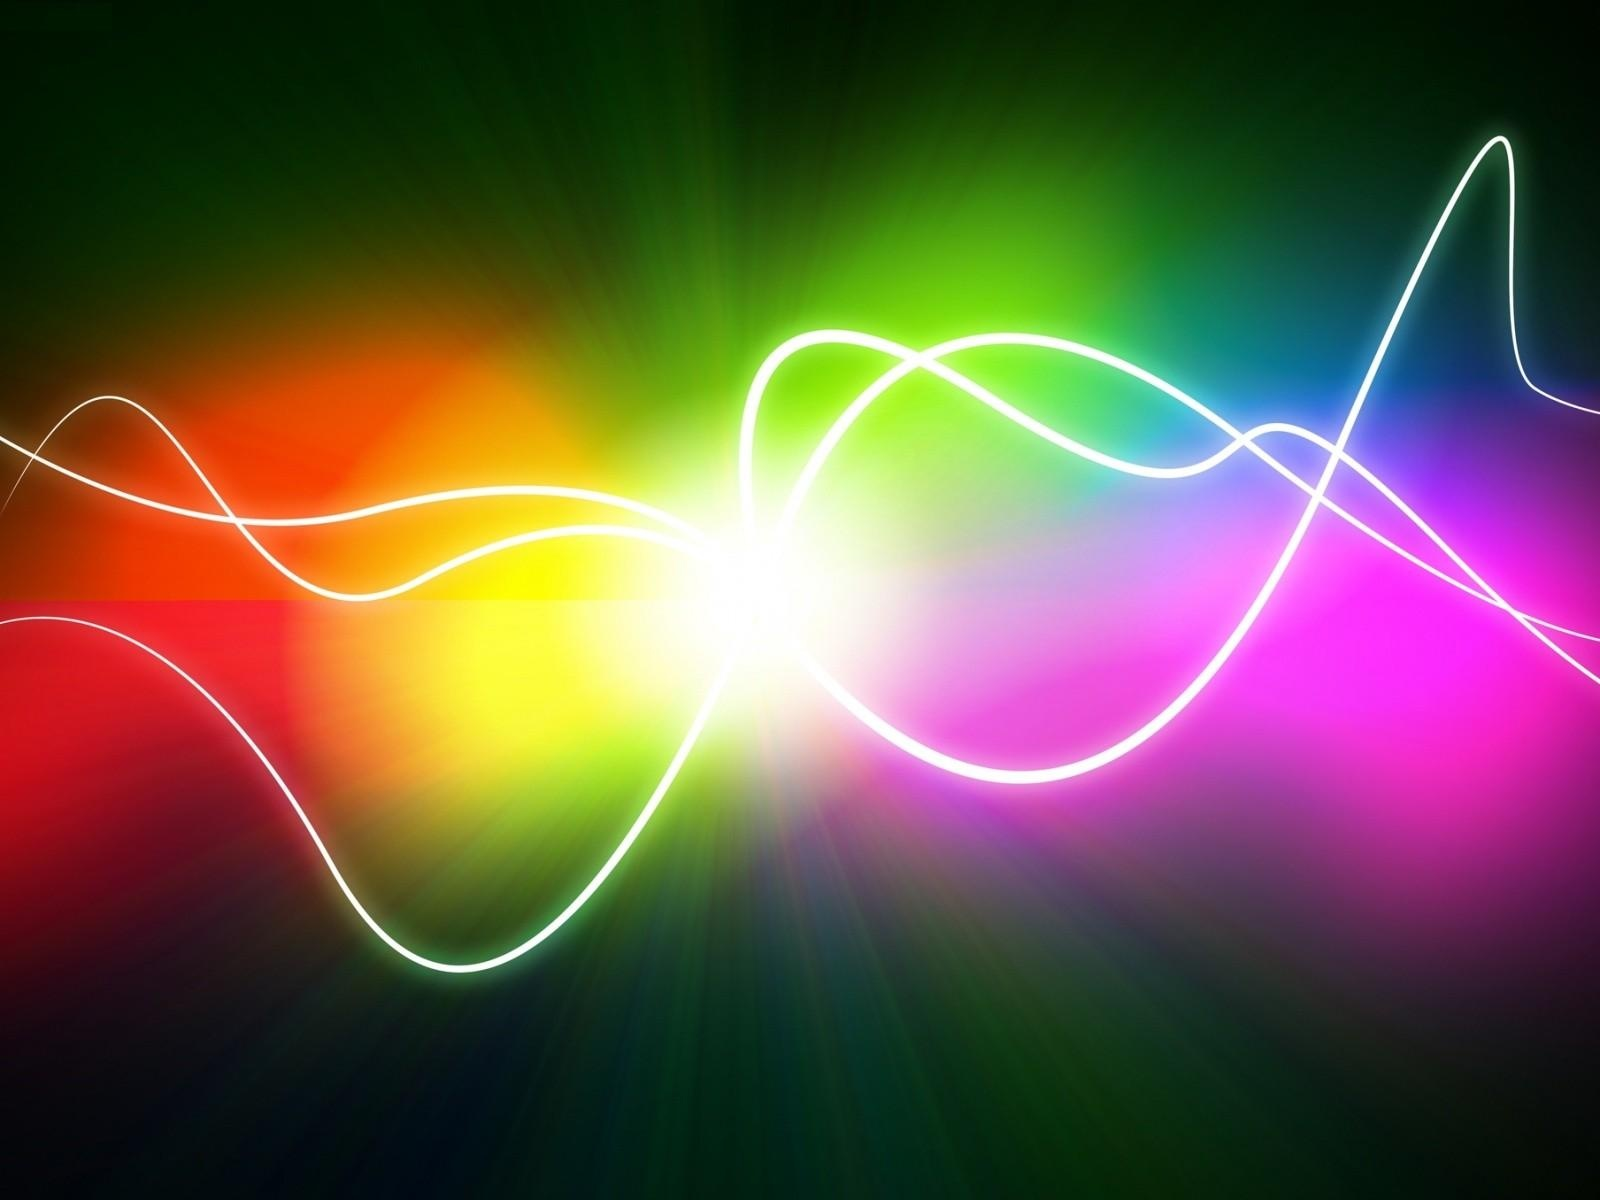 Abstract Colorful Lights Wallpapers   1600x1200   163591 1600x1200